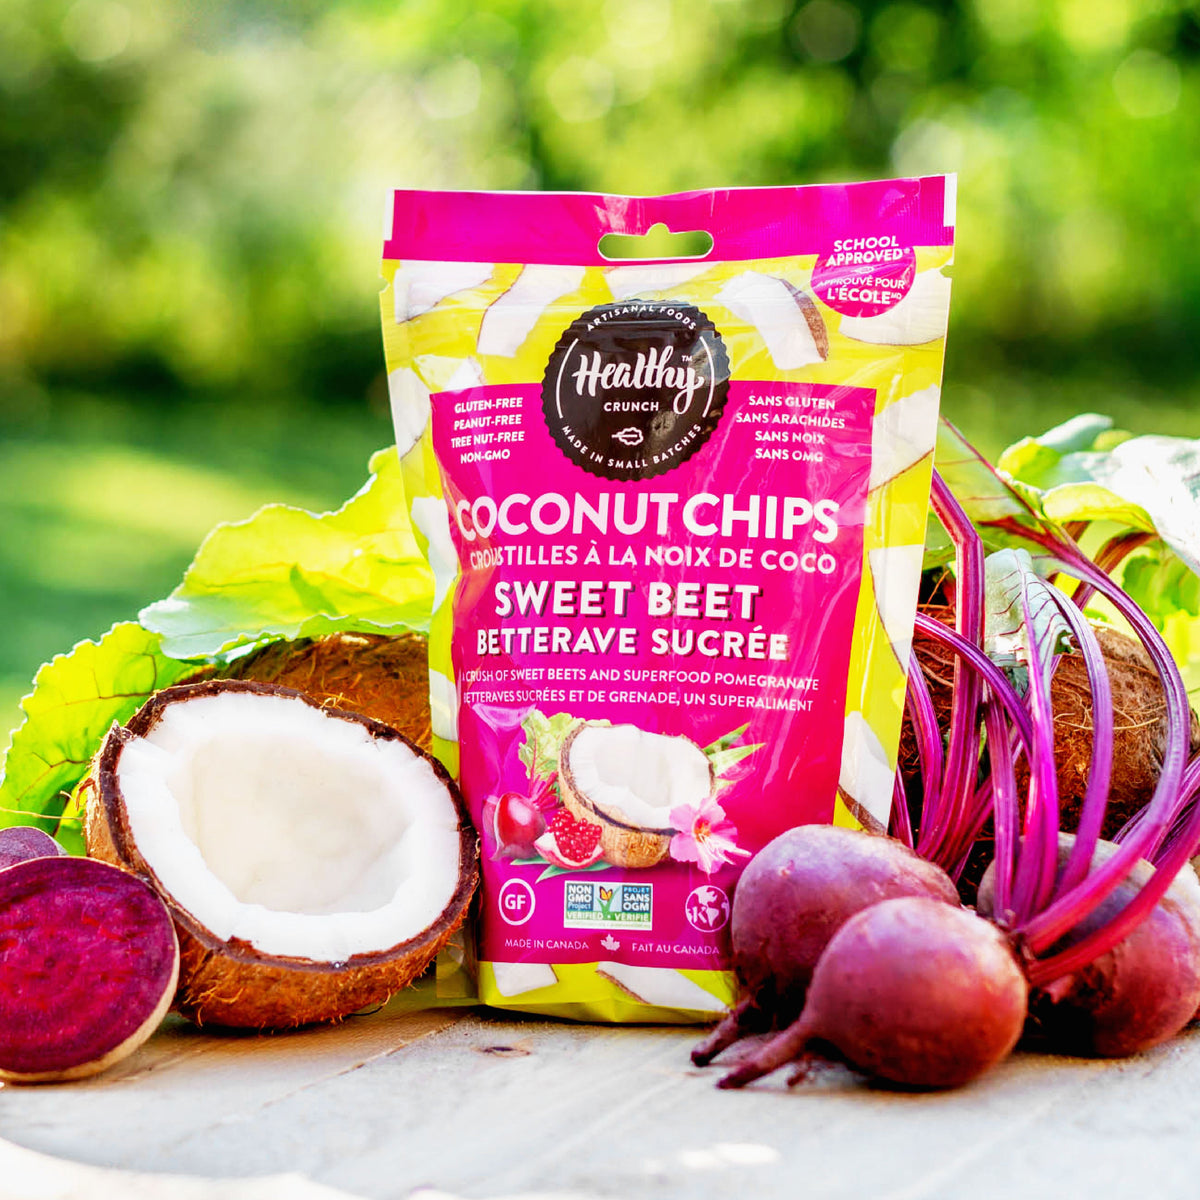 Sweet Beet Coconut Chips